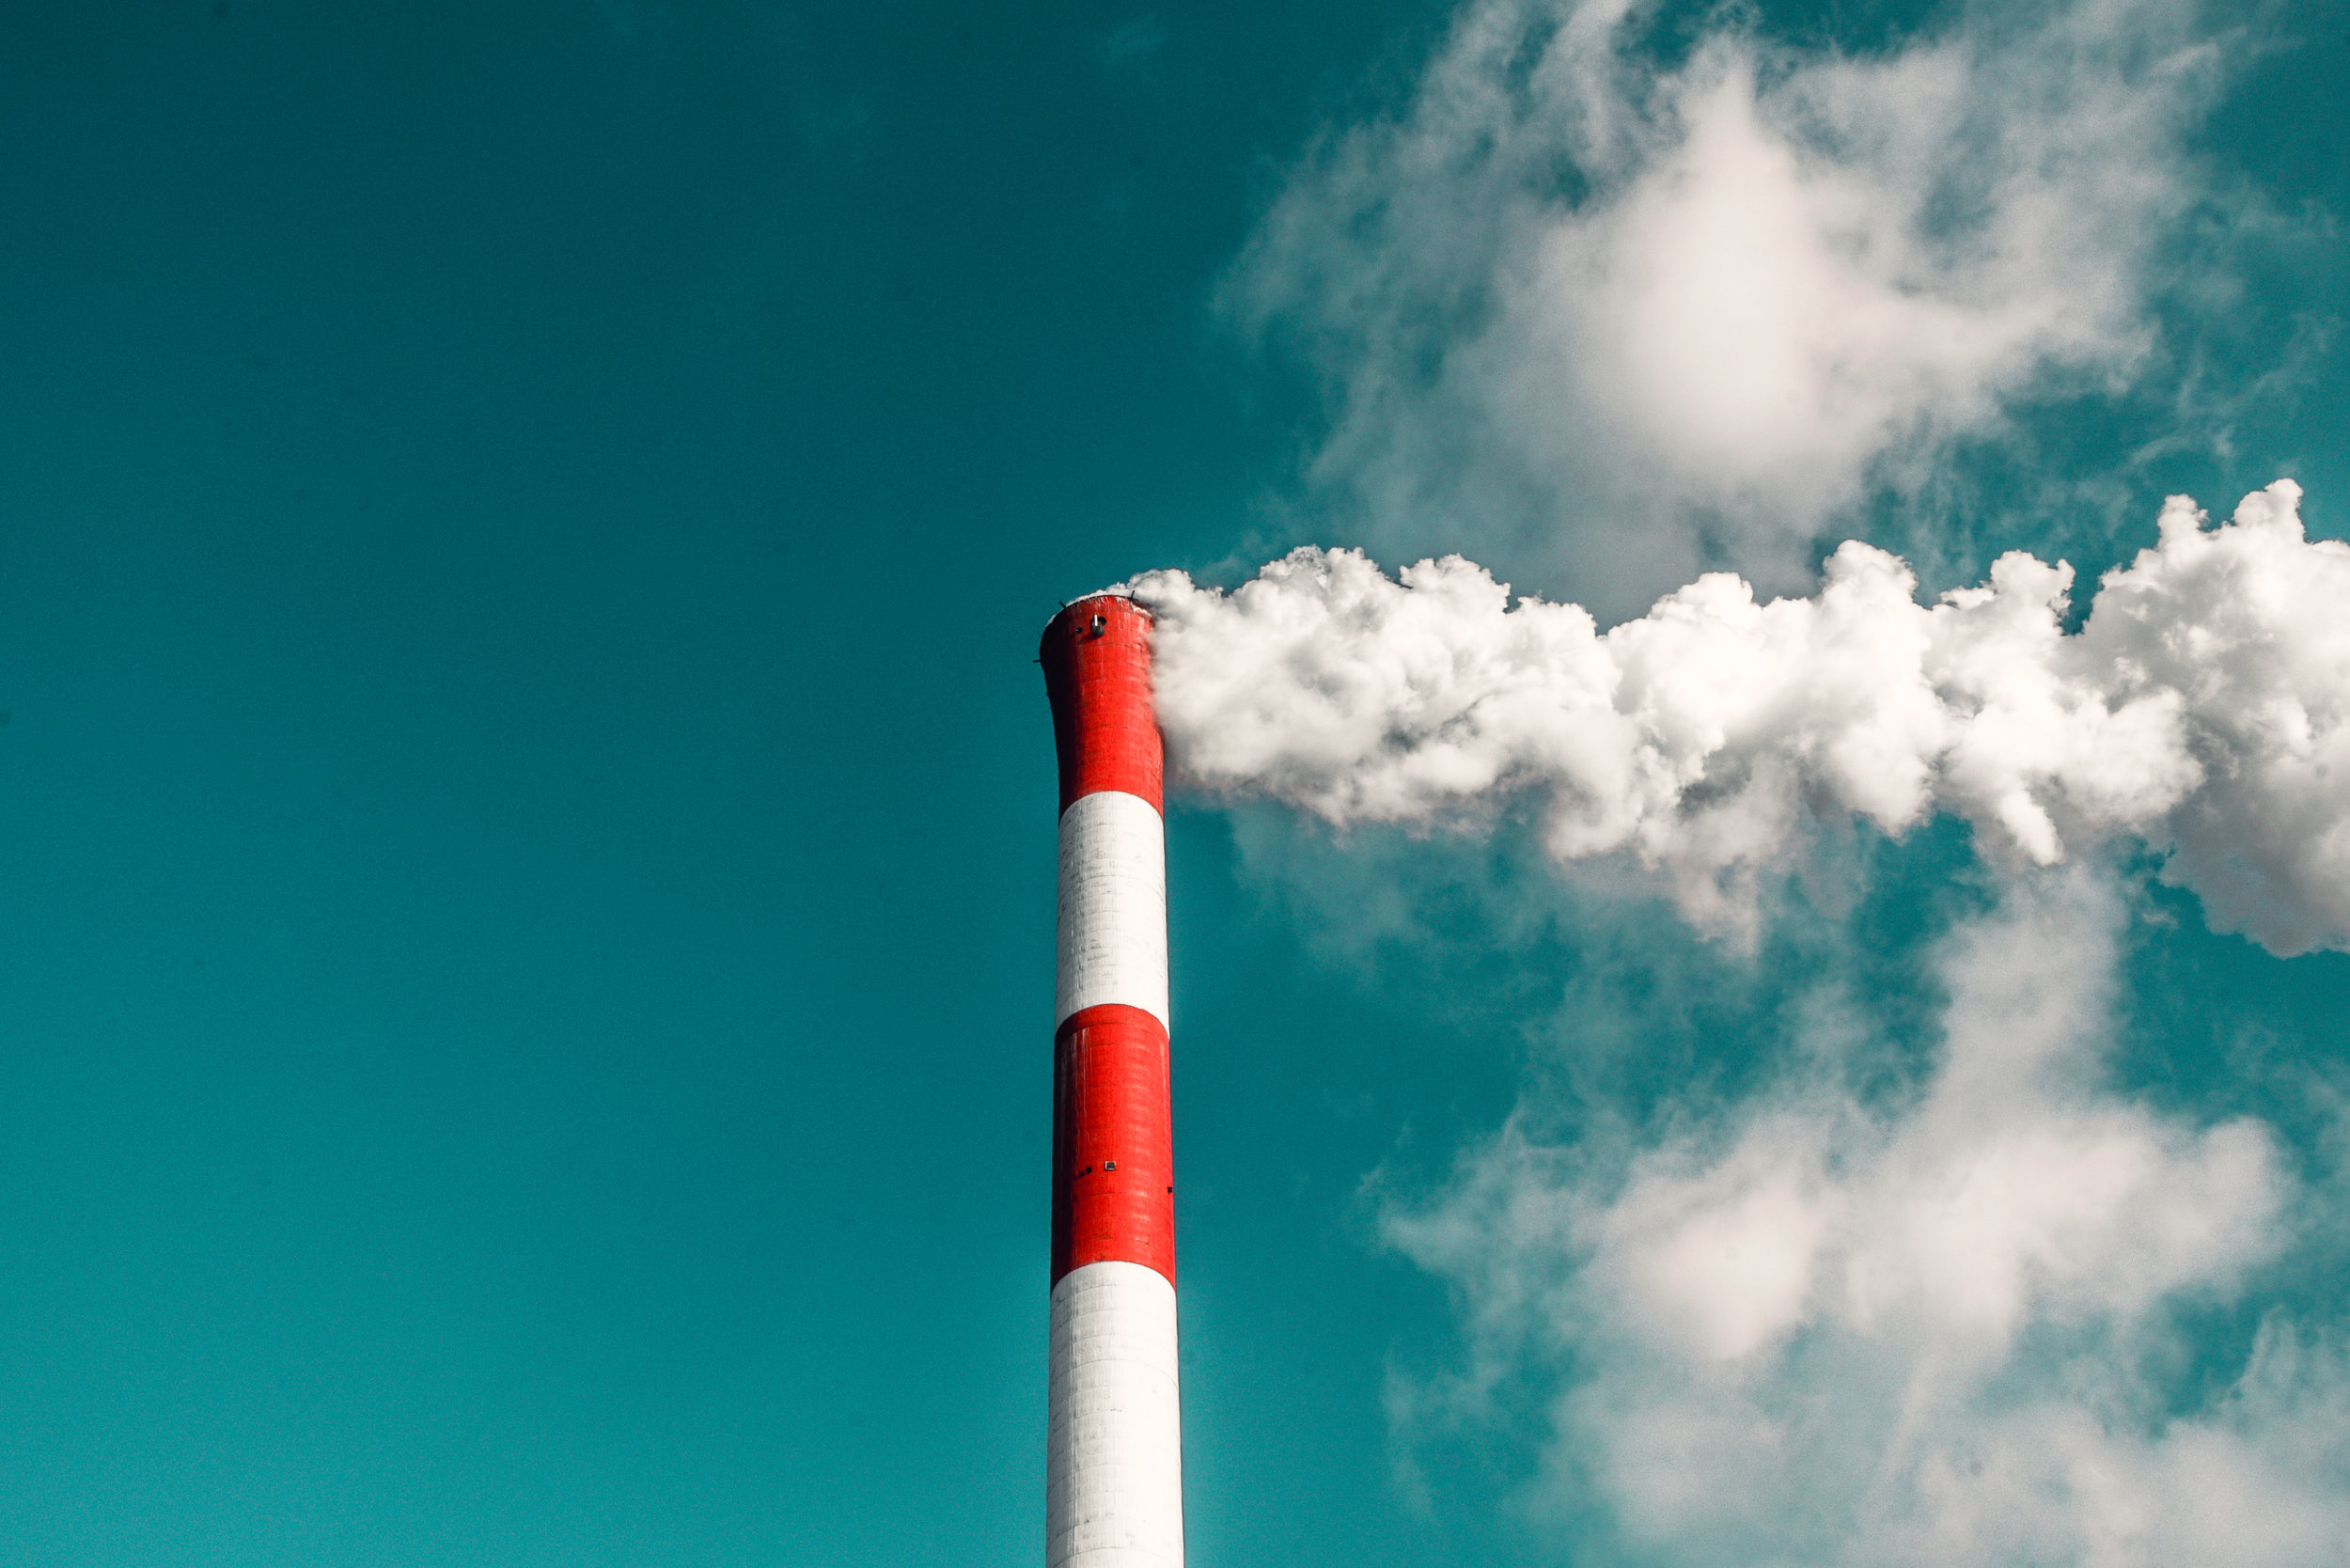 Which is the outlook you imagine in case that CO2 emissions stay at the current rate? -